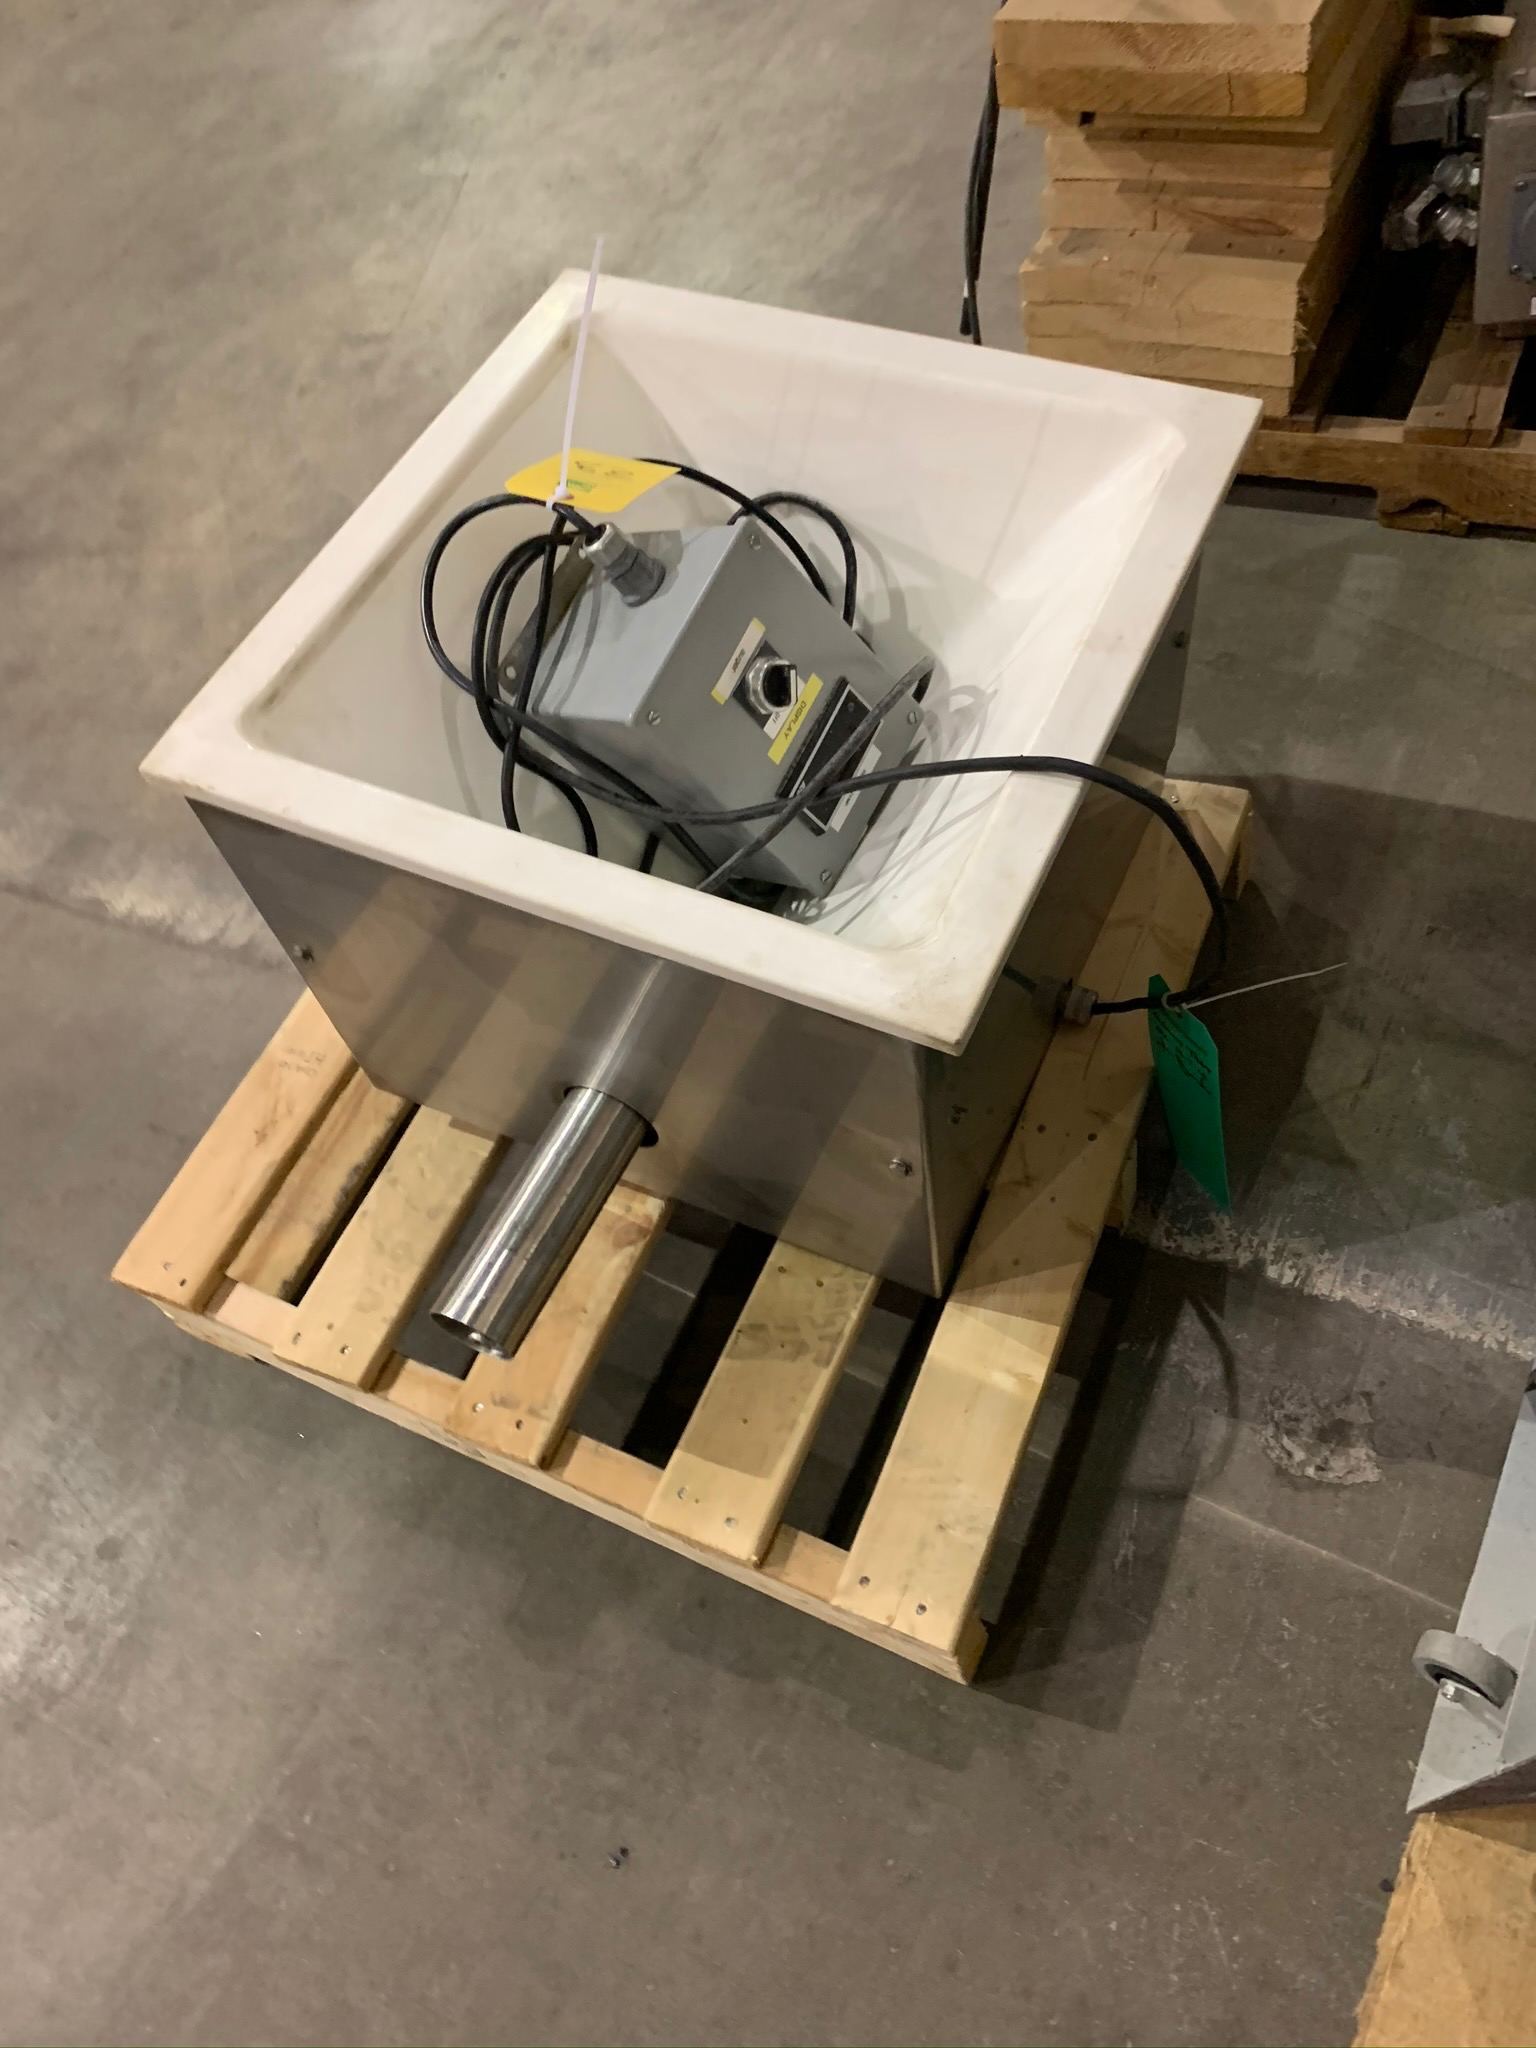 Feeder Box for Accutate Feeder (Rigging Fee - $50) - Image 2 of 3